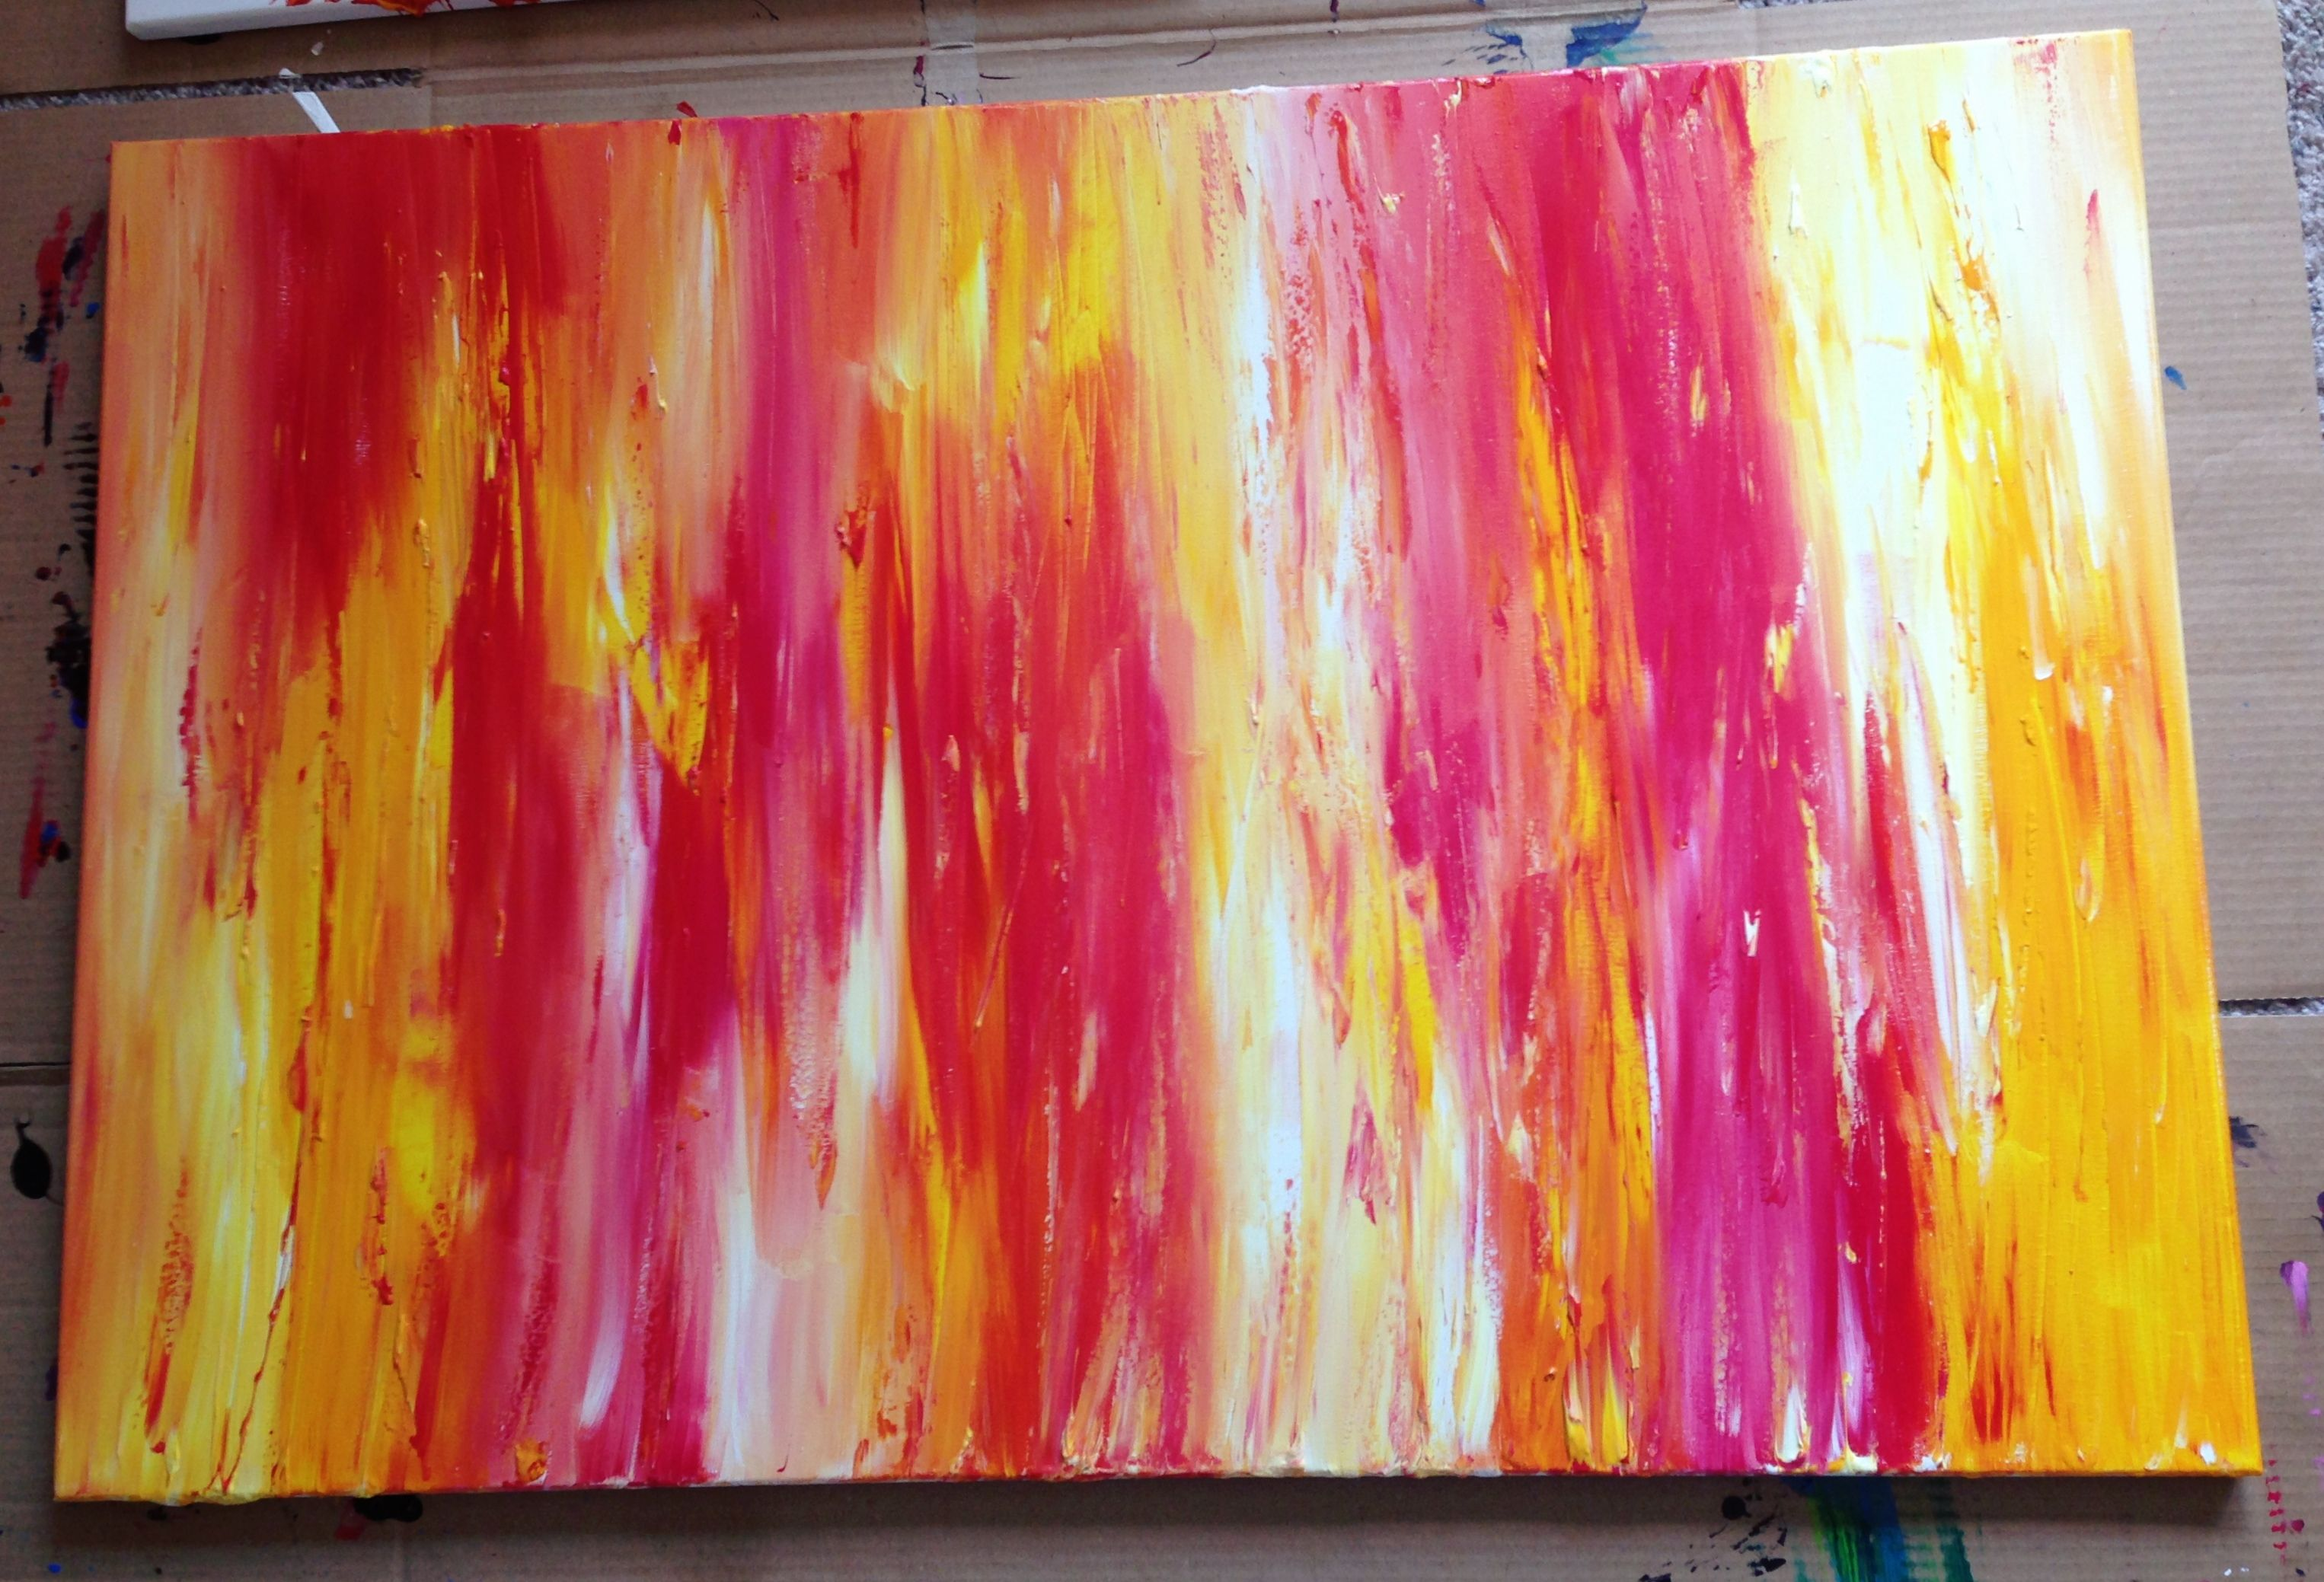 #abstract #painting #colorful #red #yellow #white http://www.facebook.com/pages/Sampschann-Original-Abstract-Paintings/183119168429871